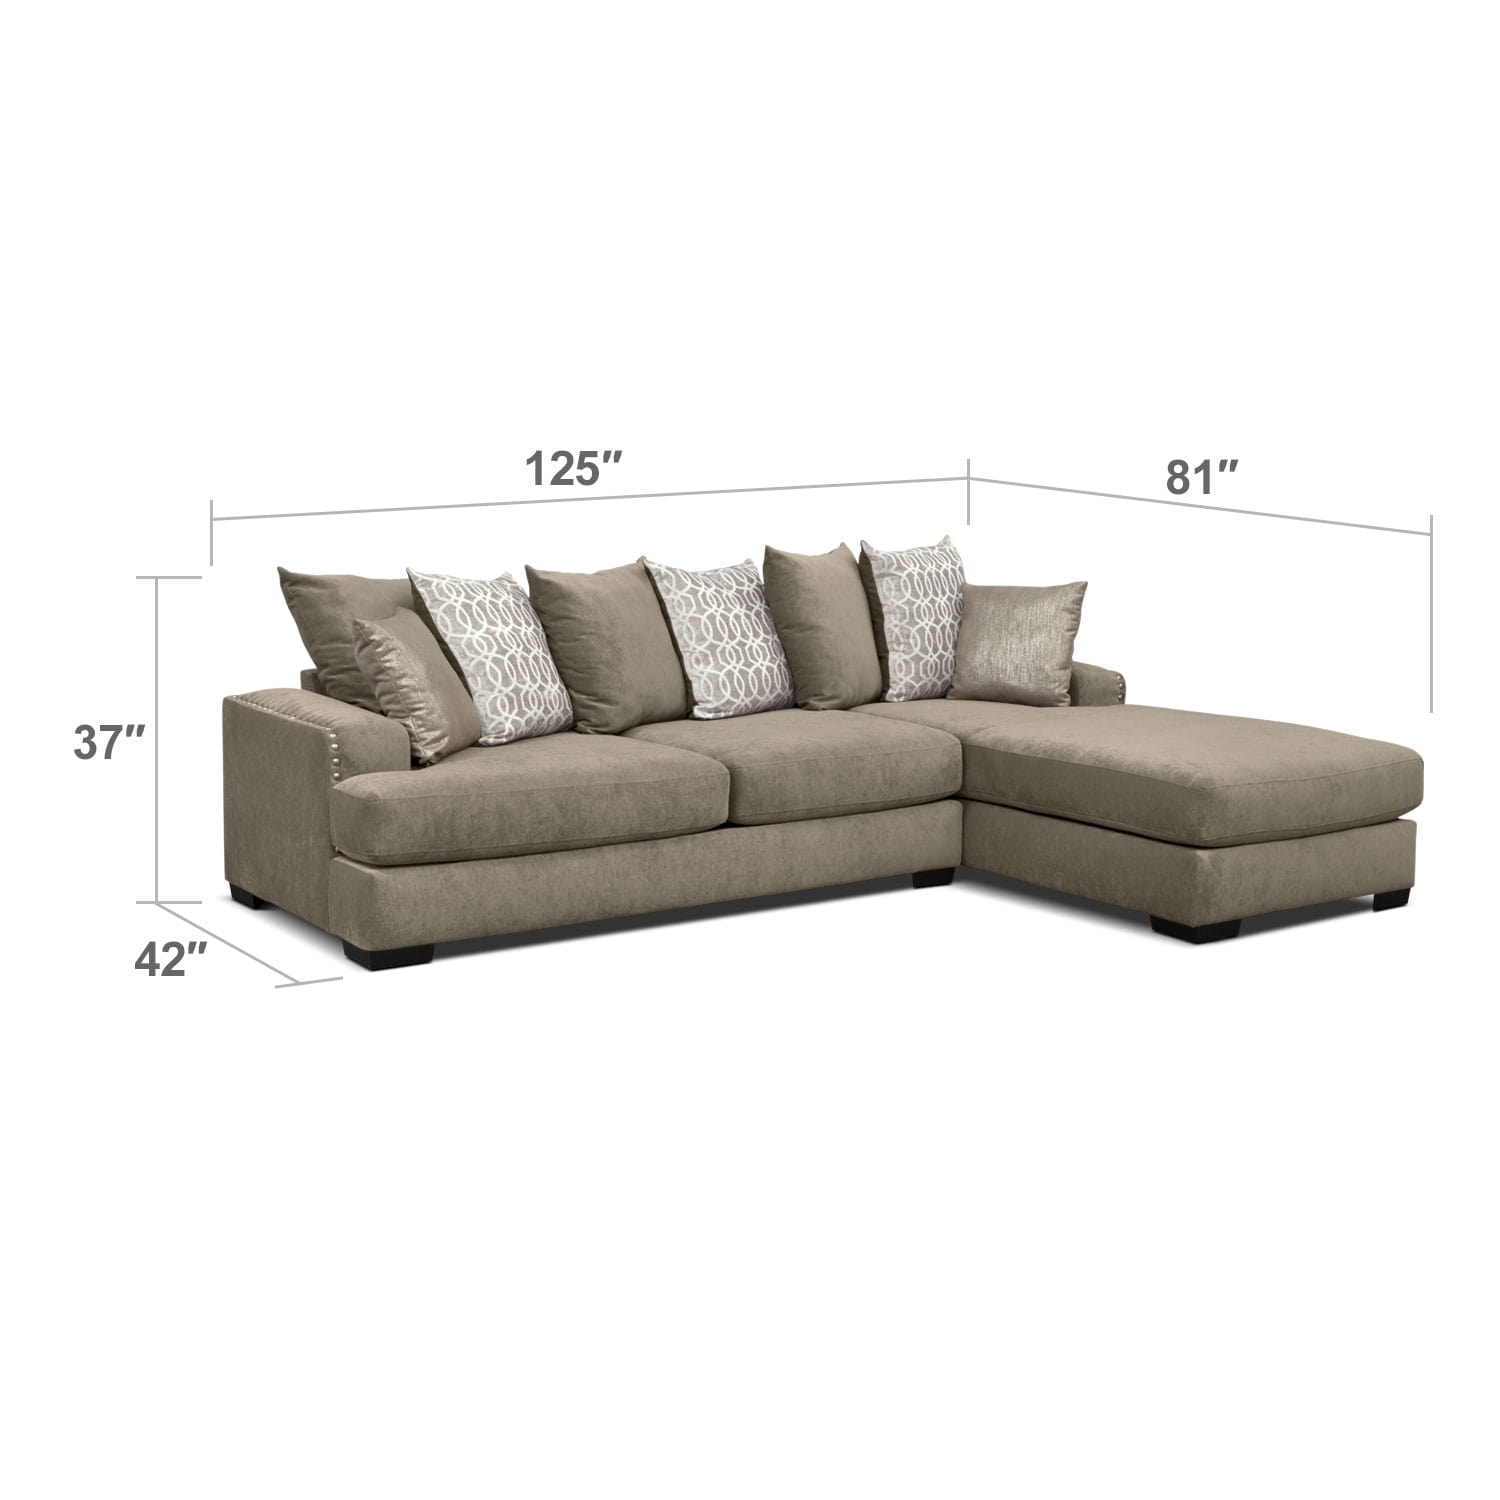 Living Room Furniture - Tempo 2-Piece Sectional with Right-Facing Chaise - Platinum